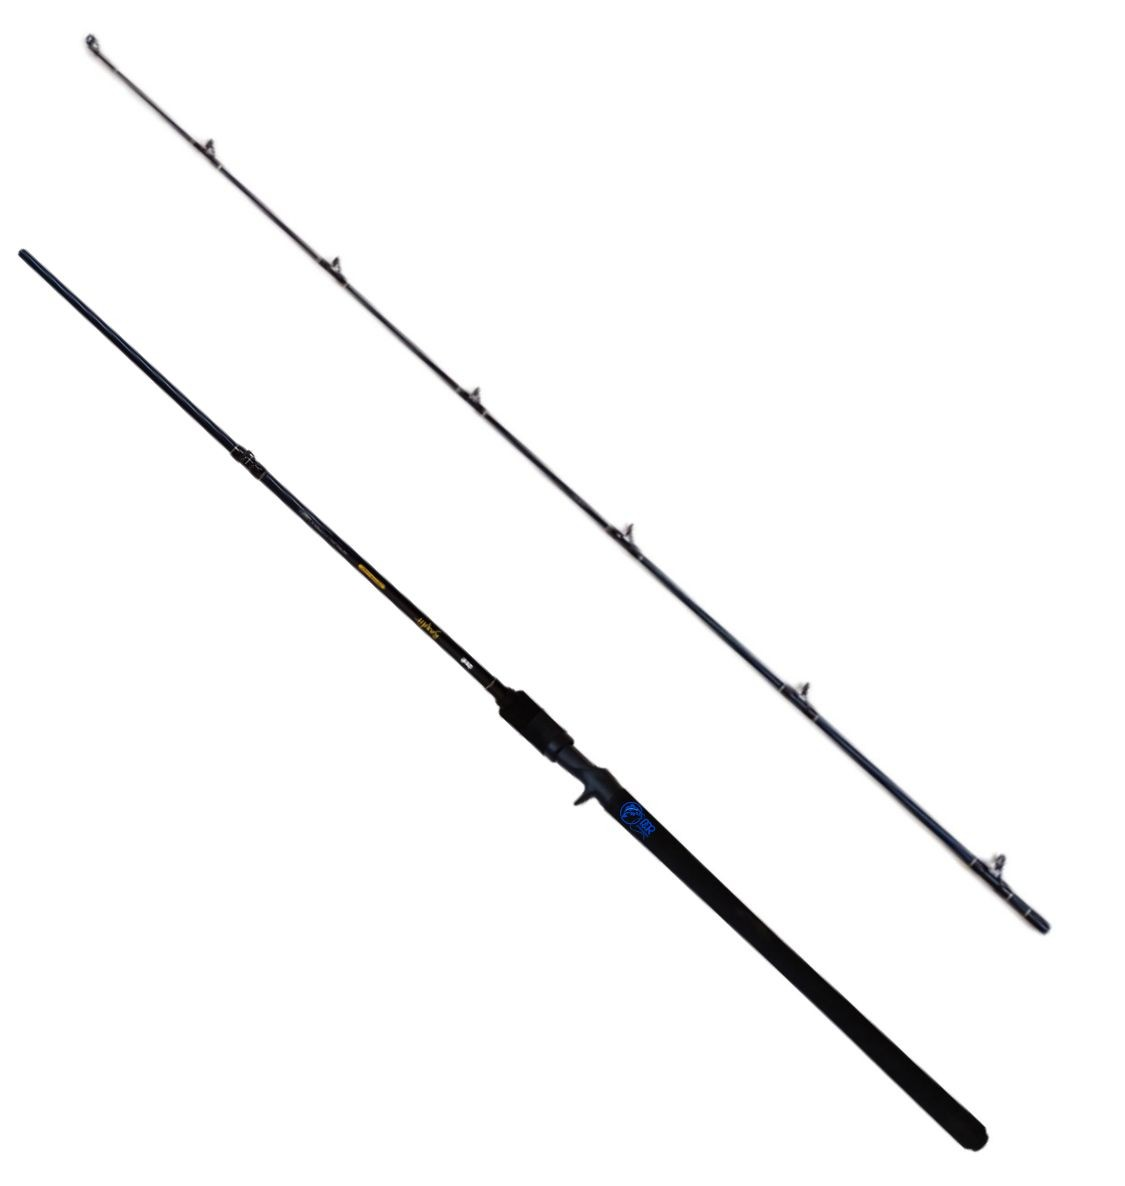 Vara Carretilha Bandit Power Cast 2.13m 12-40b 2 Parte Celta